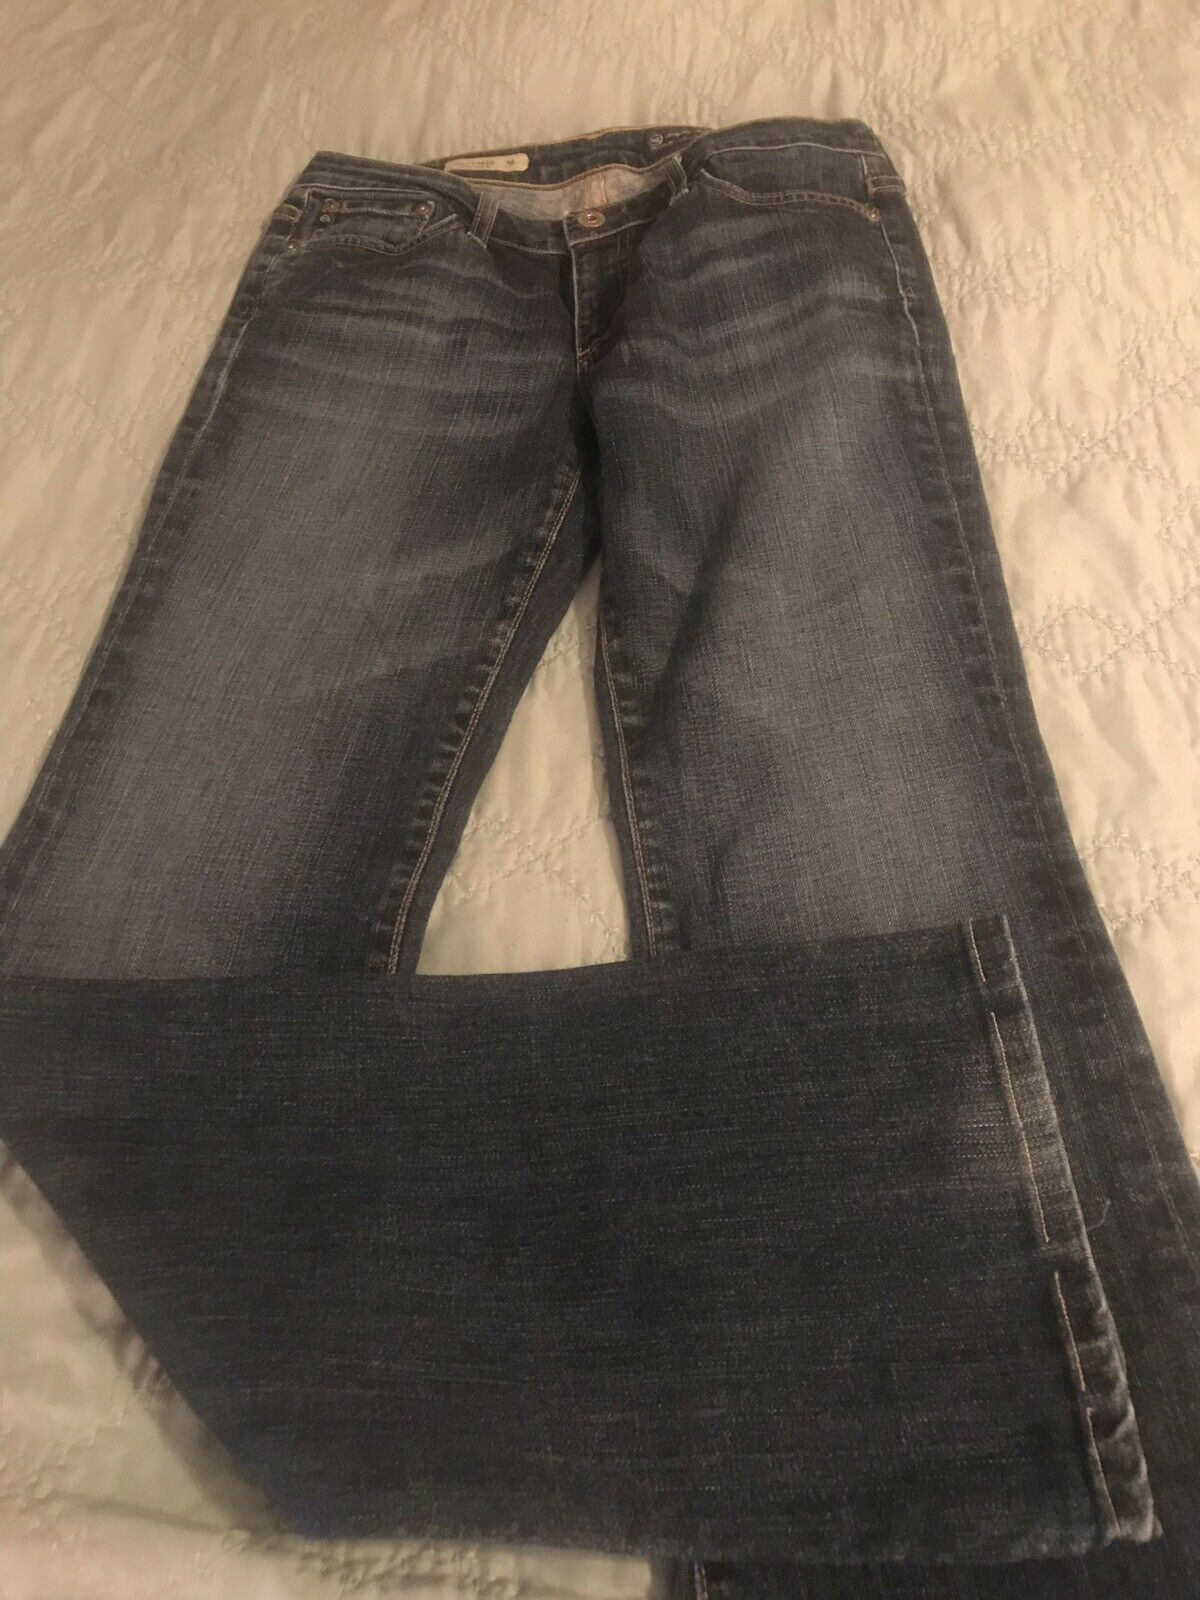 AG Adriano goldschmied Womens Jeans  The Jessie  Curvy Bootcut Size 27R